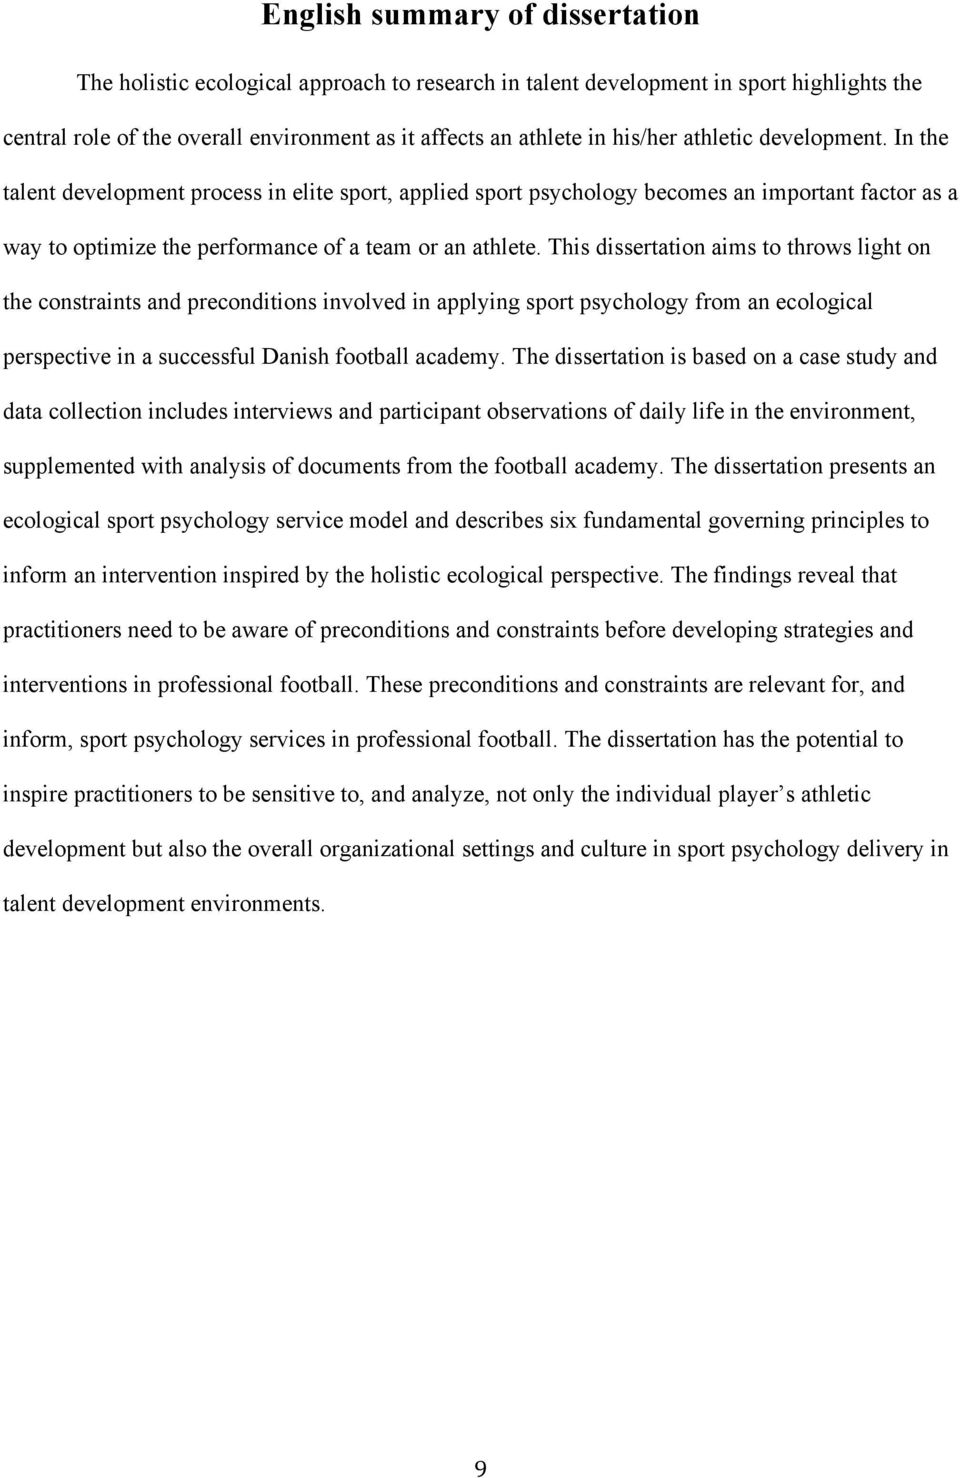 This dissertation aims to throws light on the constraints and preconditions involved in applying sport psychology from an ecological perspective in a successful Danish football academy.